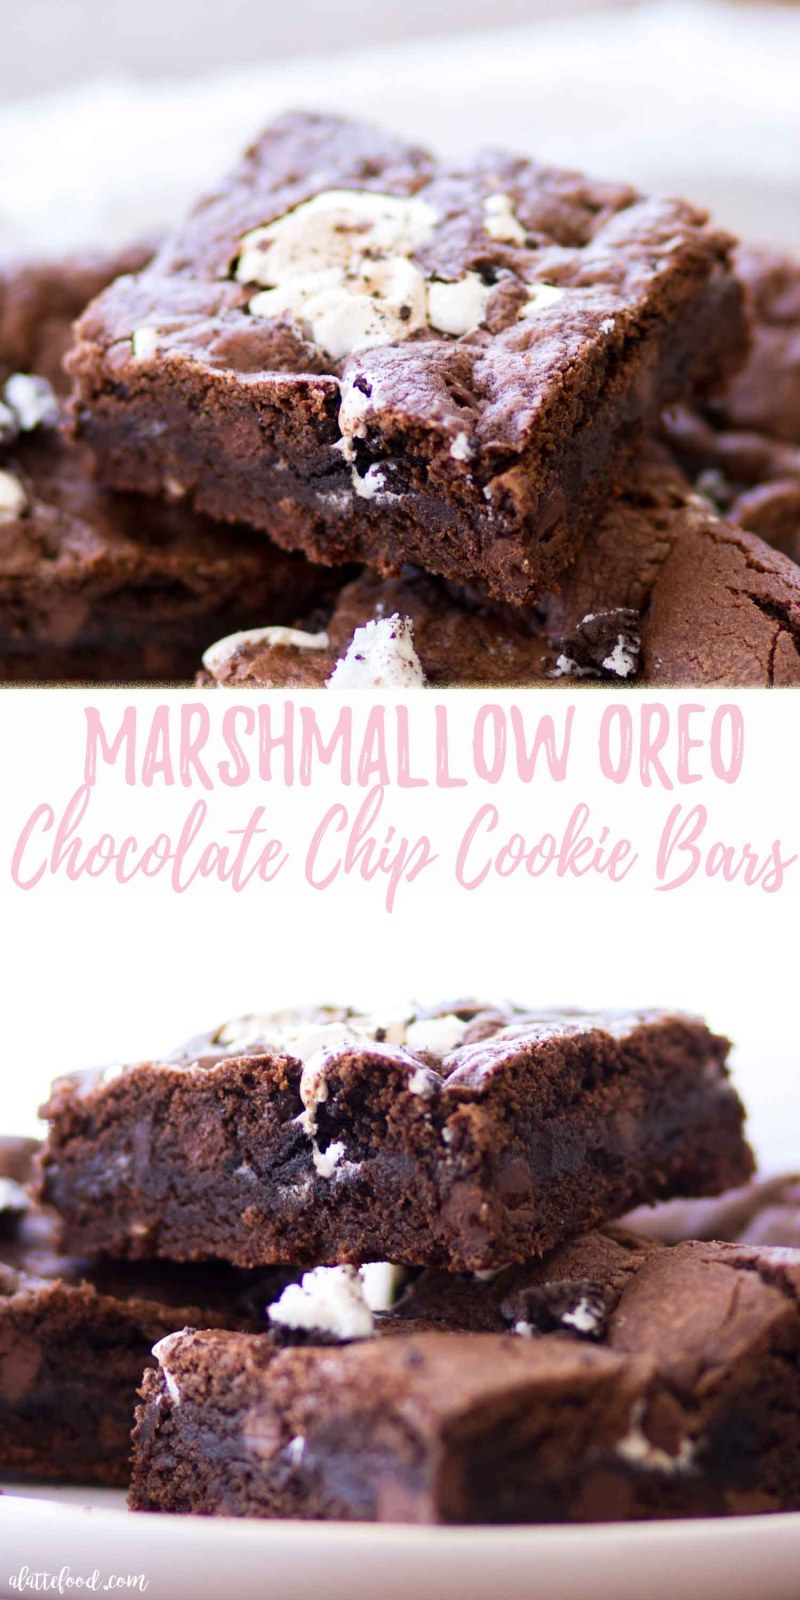 Marshmallow Oreo Chocolate Chip Cookie Bars collage photo with text